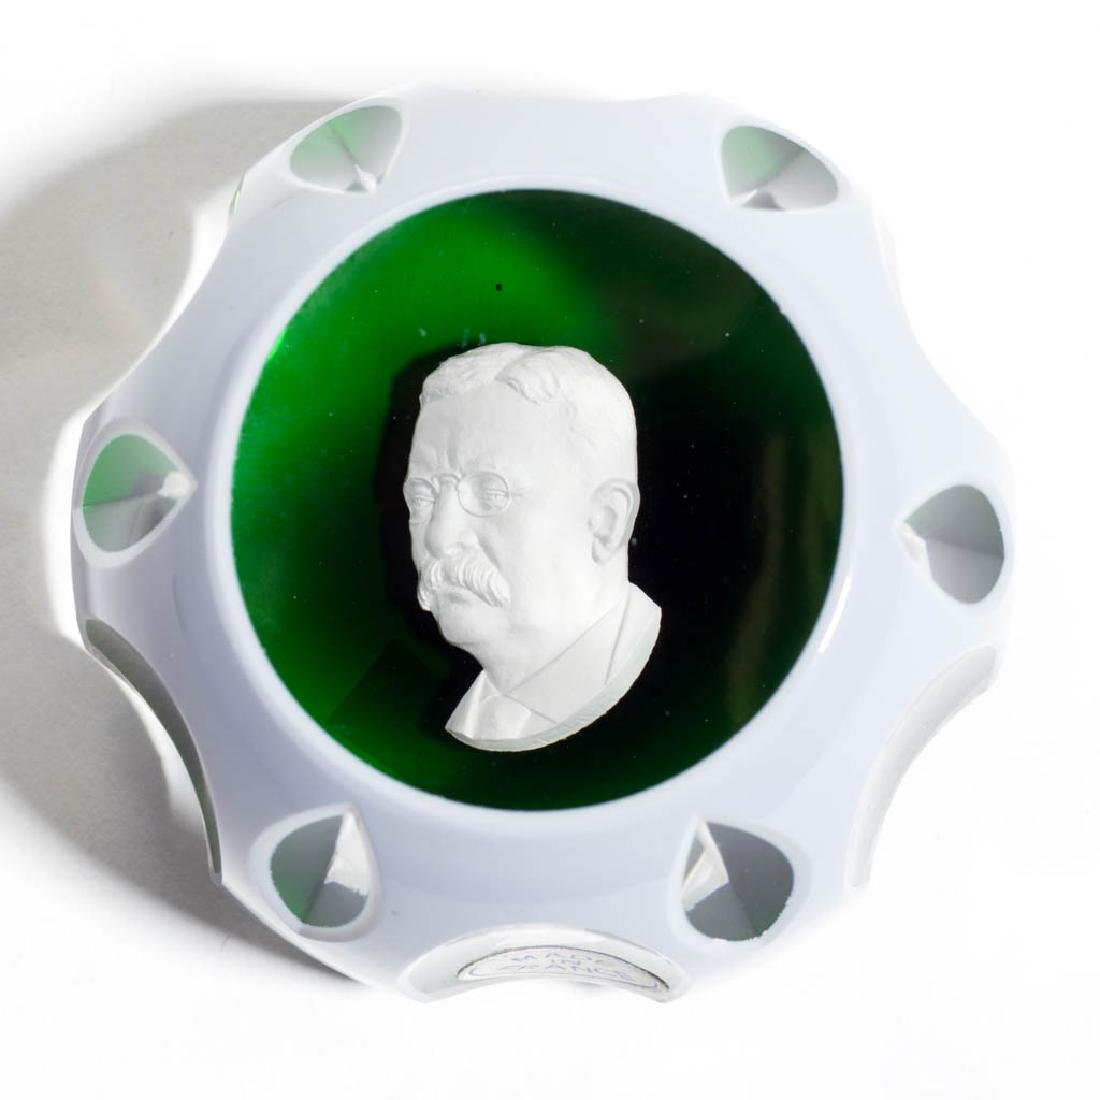 CONTEMPORARY BACCARAT THEODORE ROOSEVELT OVERLAY